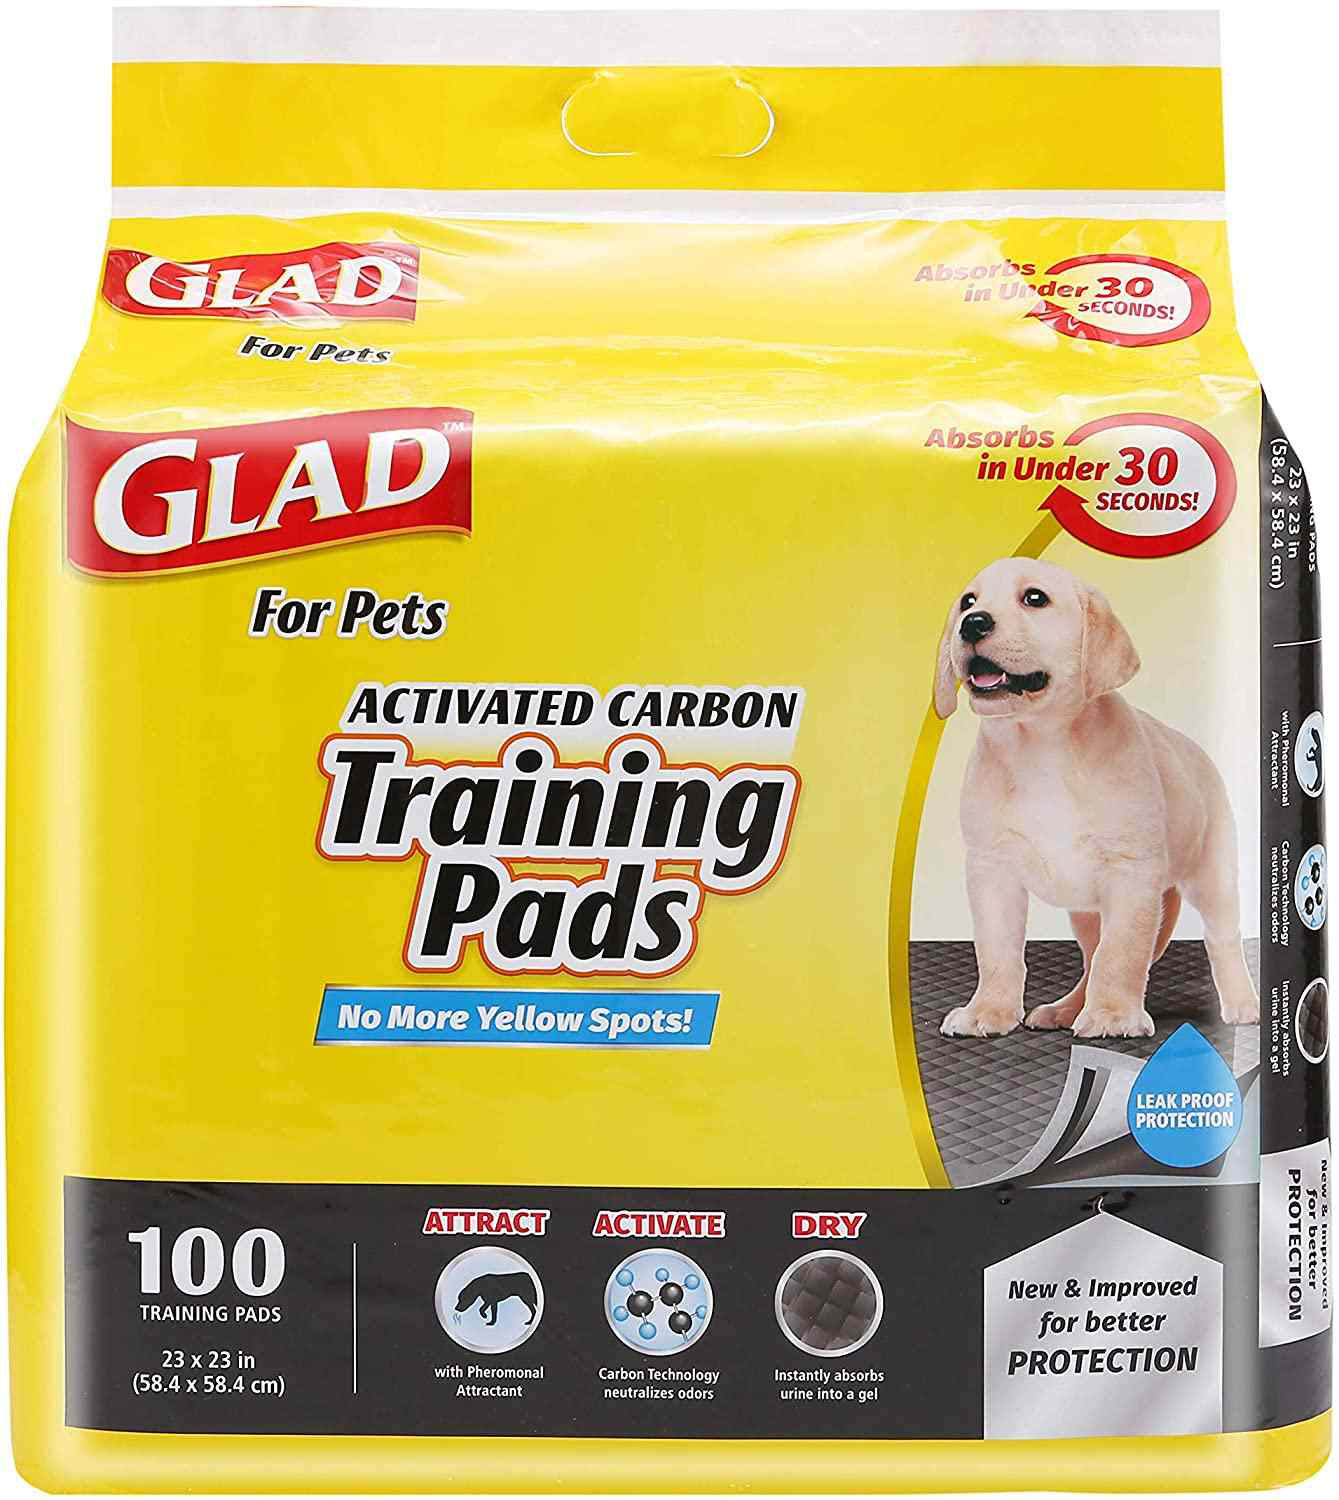 Glad for Pets Activated Carbon Training Pads